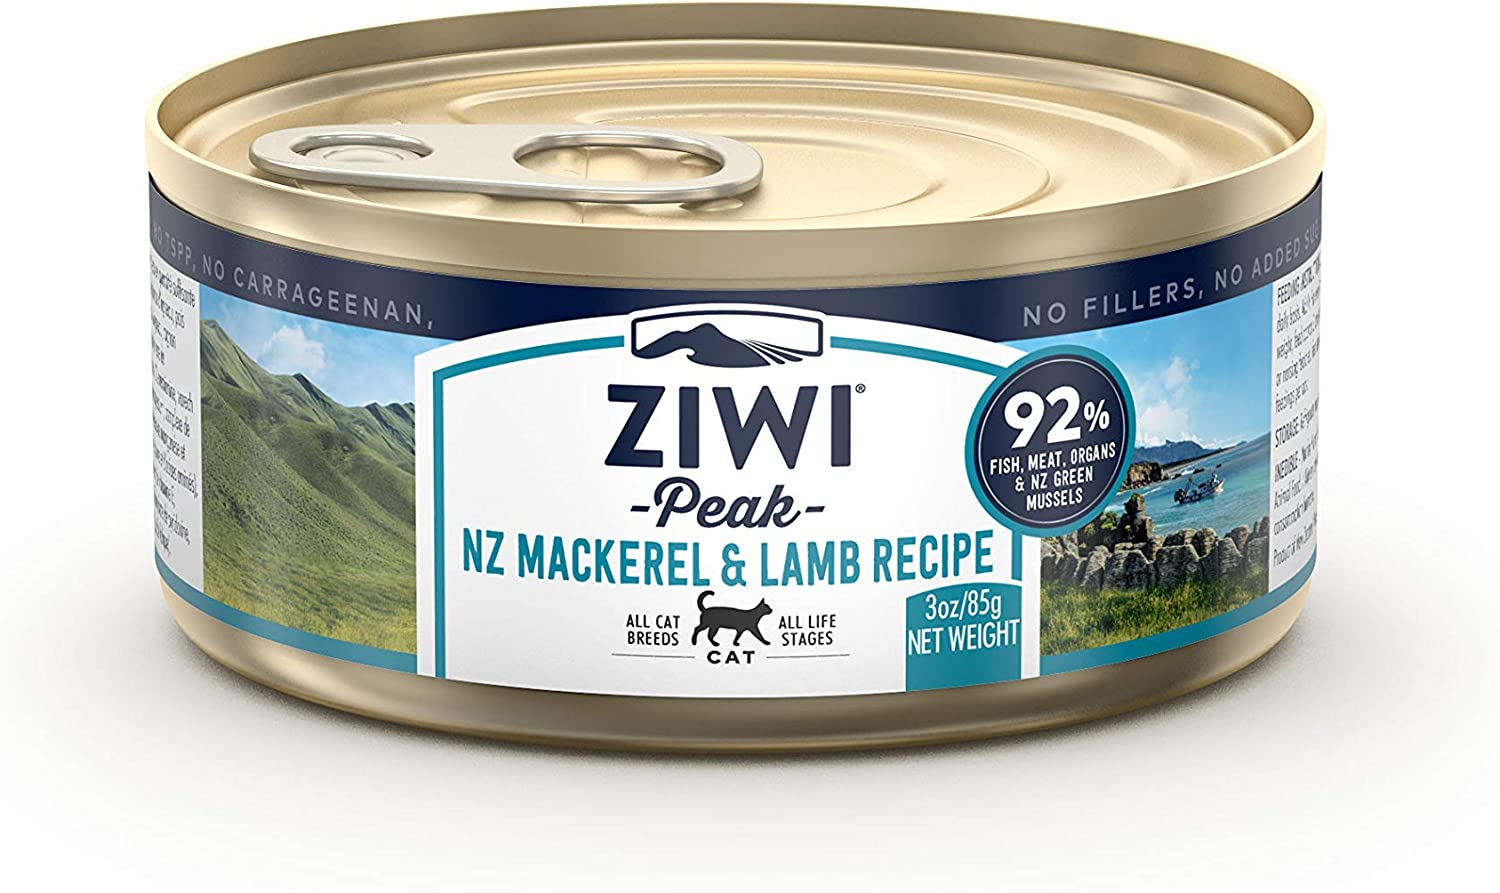 ZIWI Peak Canned Wet Cat Food – All Natural, High Protein, Grain Free, Limited Ingredient, with Superfoods (Mackerel & Lamb, Case of 24, 3oz Cans)